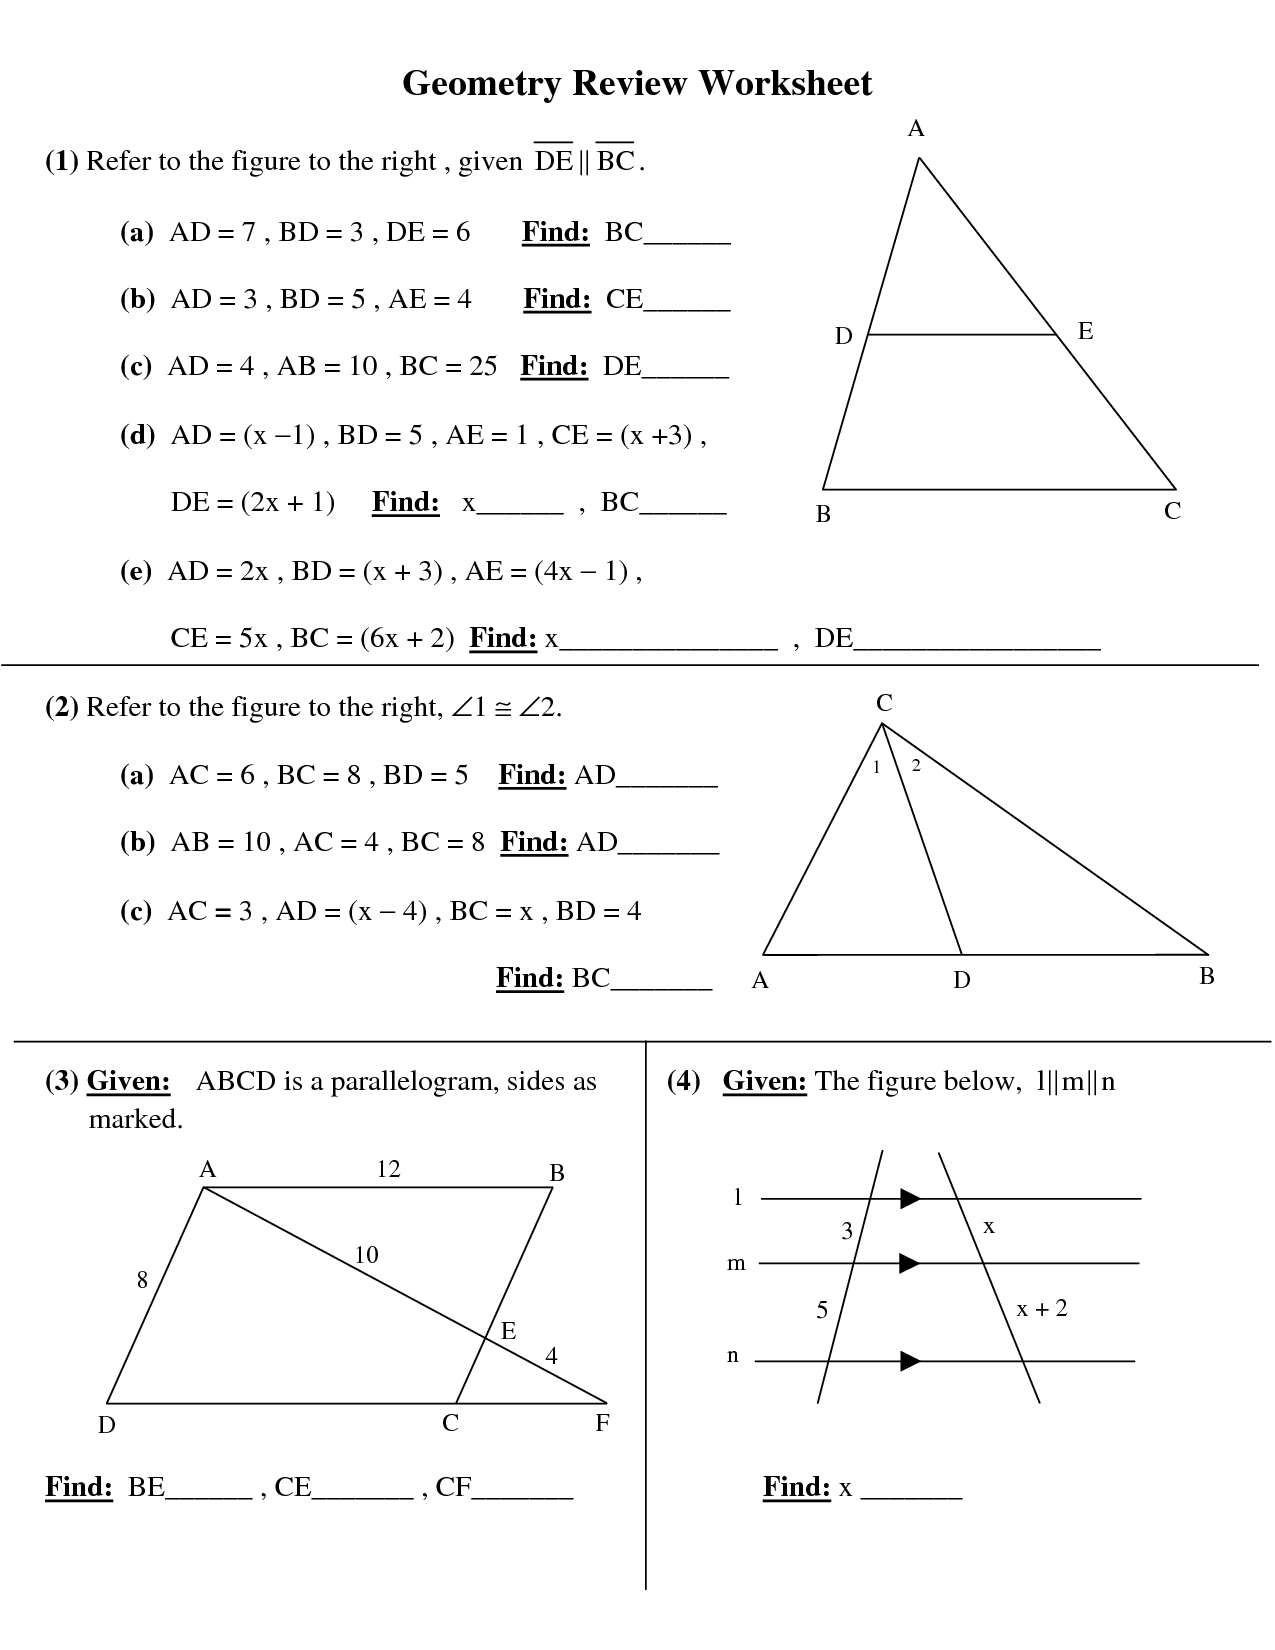 Free Worksheet Geometry Worksheets High School free high school geometry worksheets abitlikethis math printable spelling worksheets